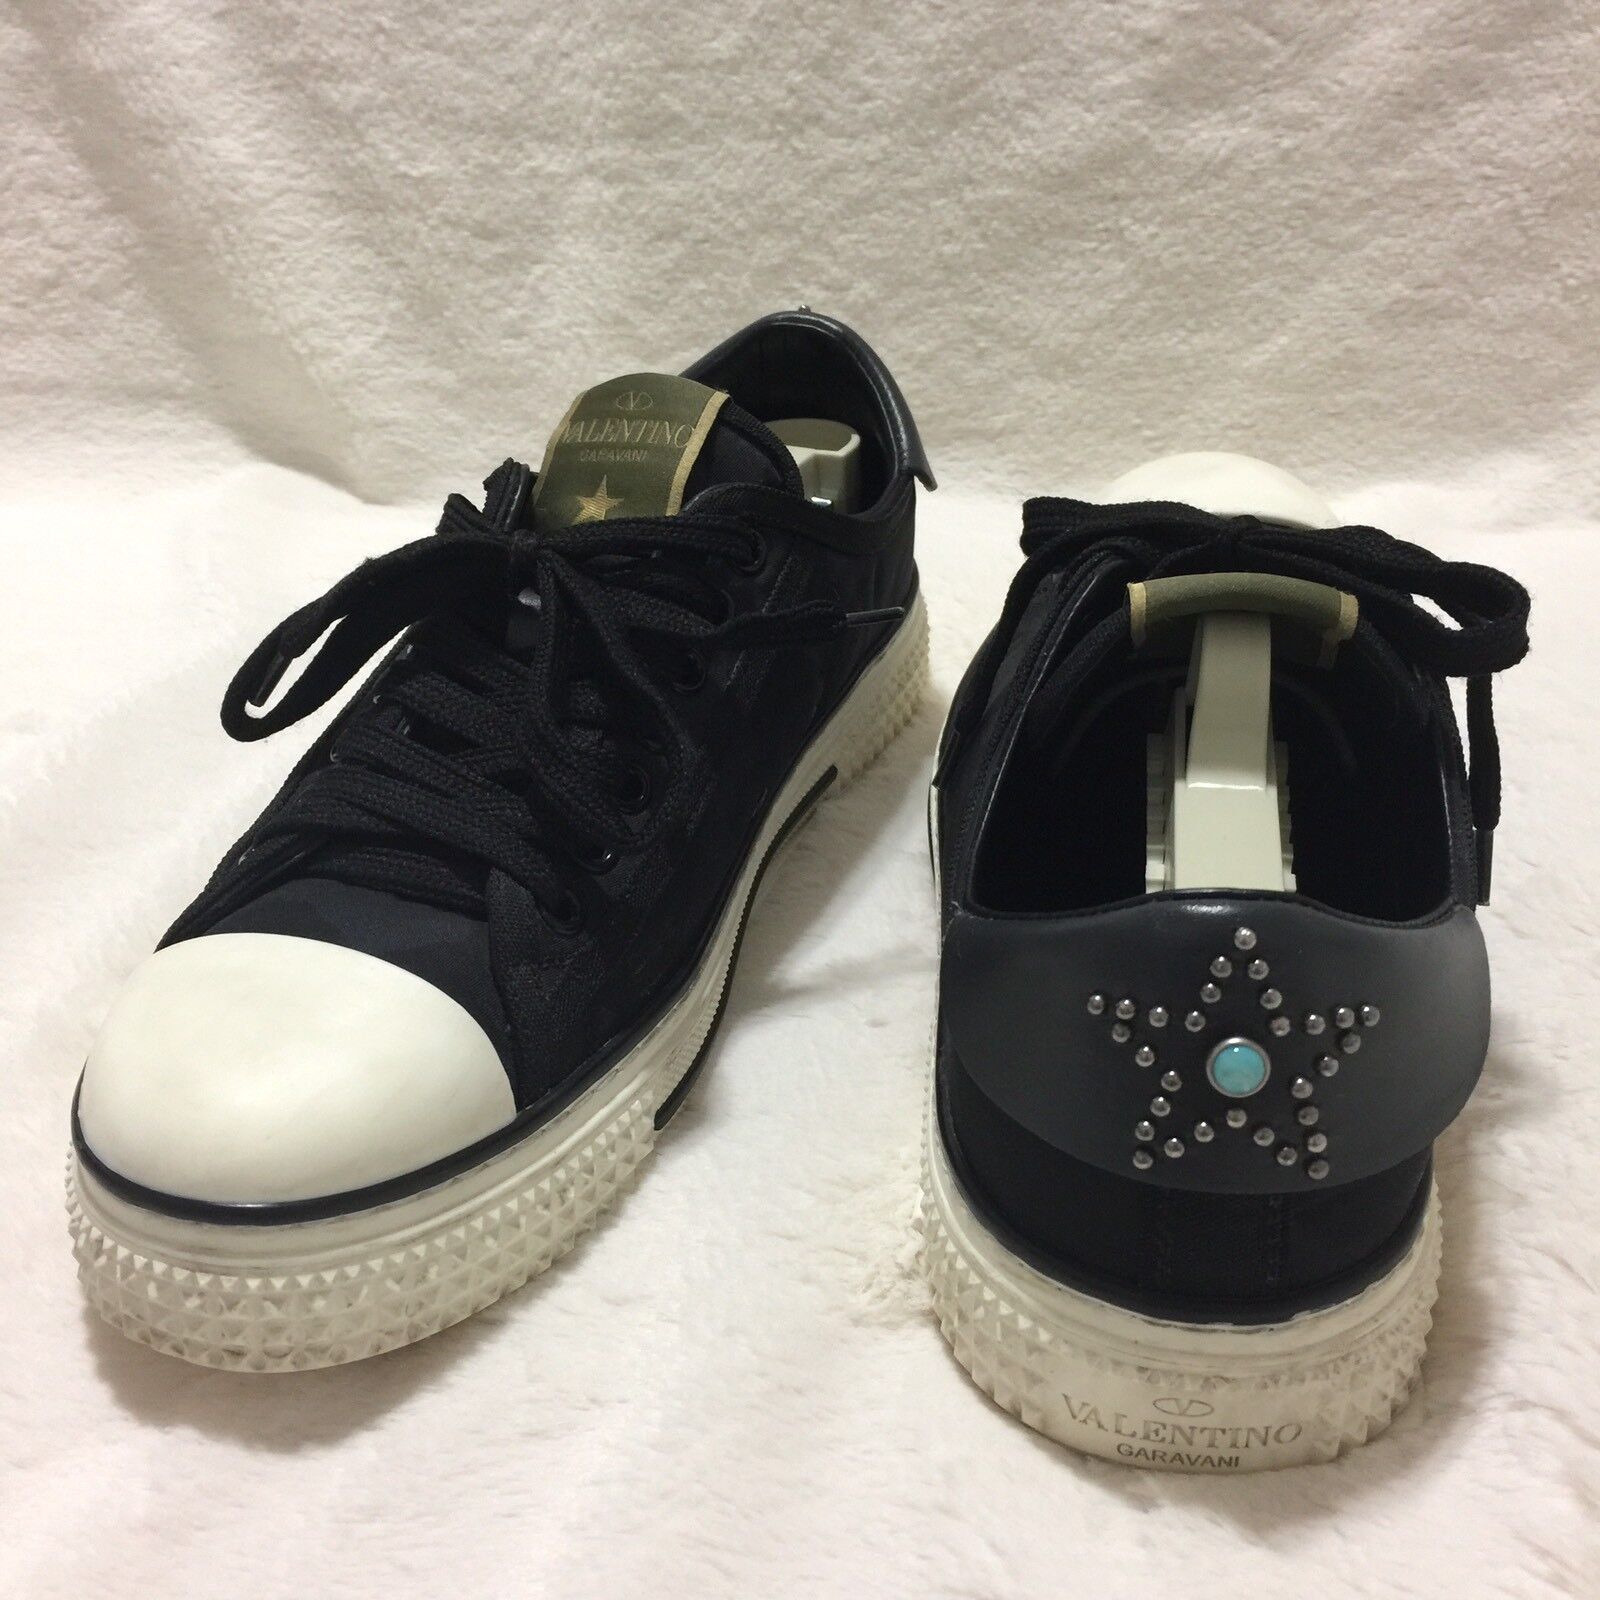 VALENTINO 'Starstudded' Low Top Women's Sneaker Size 38